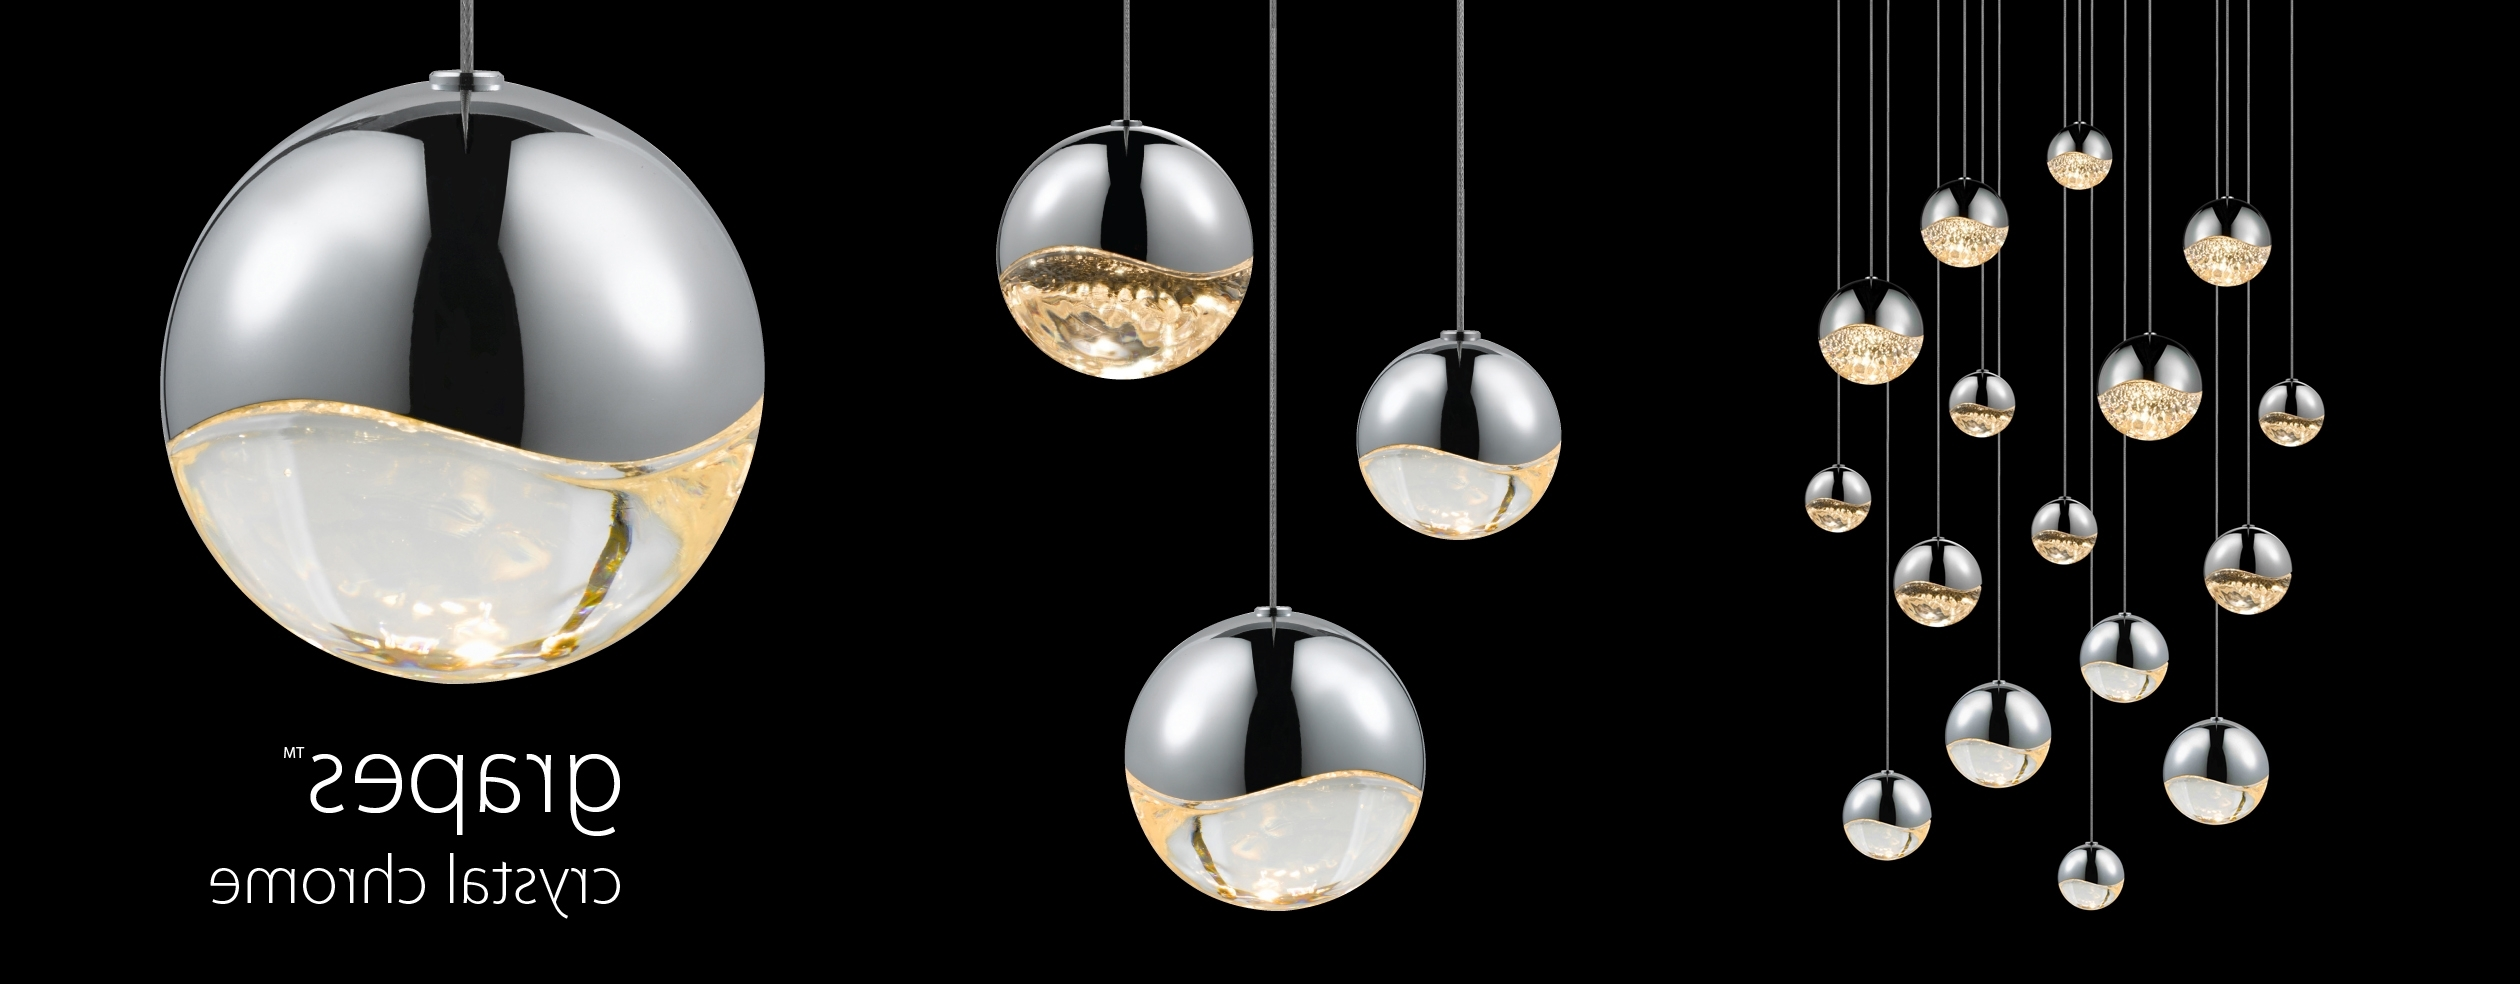 Wolberg Lighting And Design (View 20 of 20)